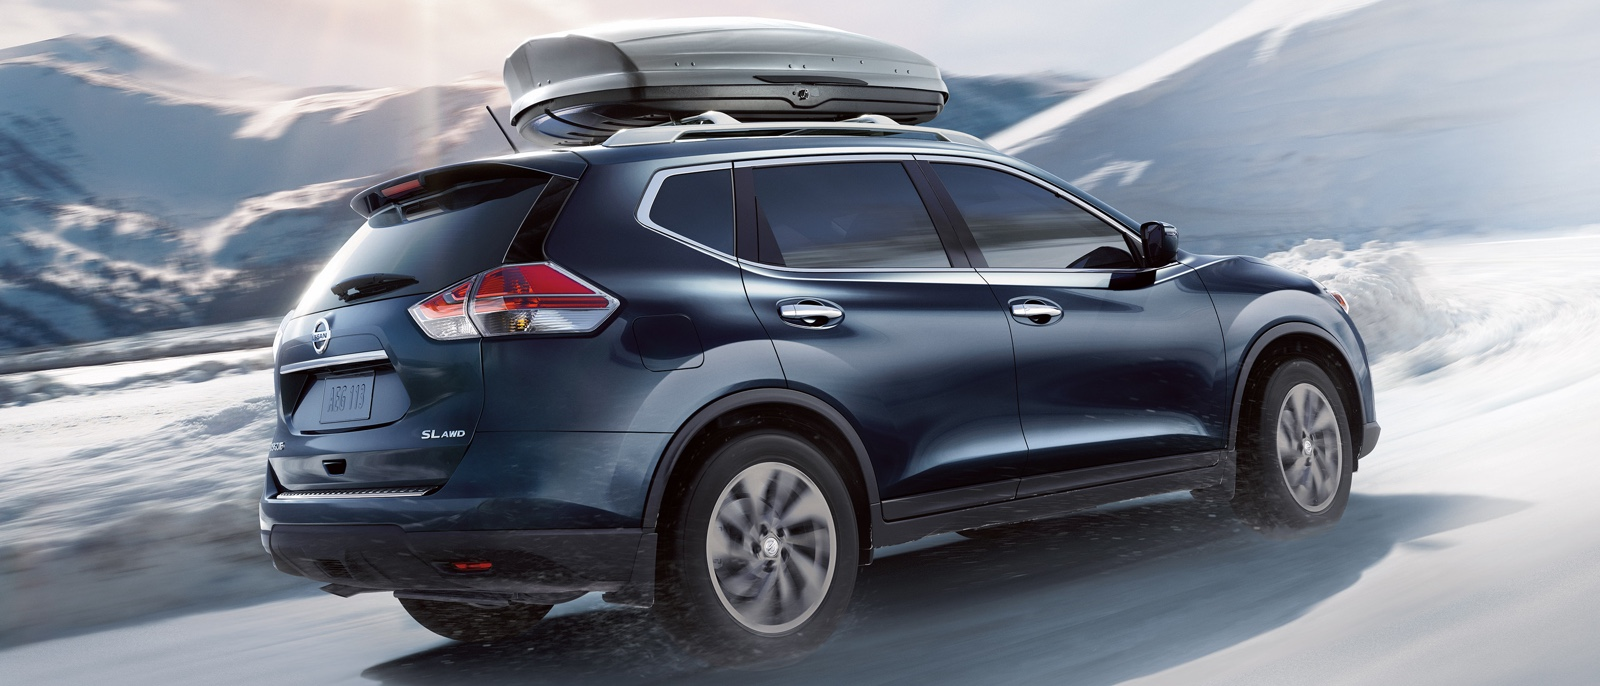 Nissan Rogue in Winter